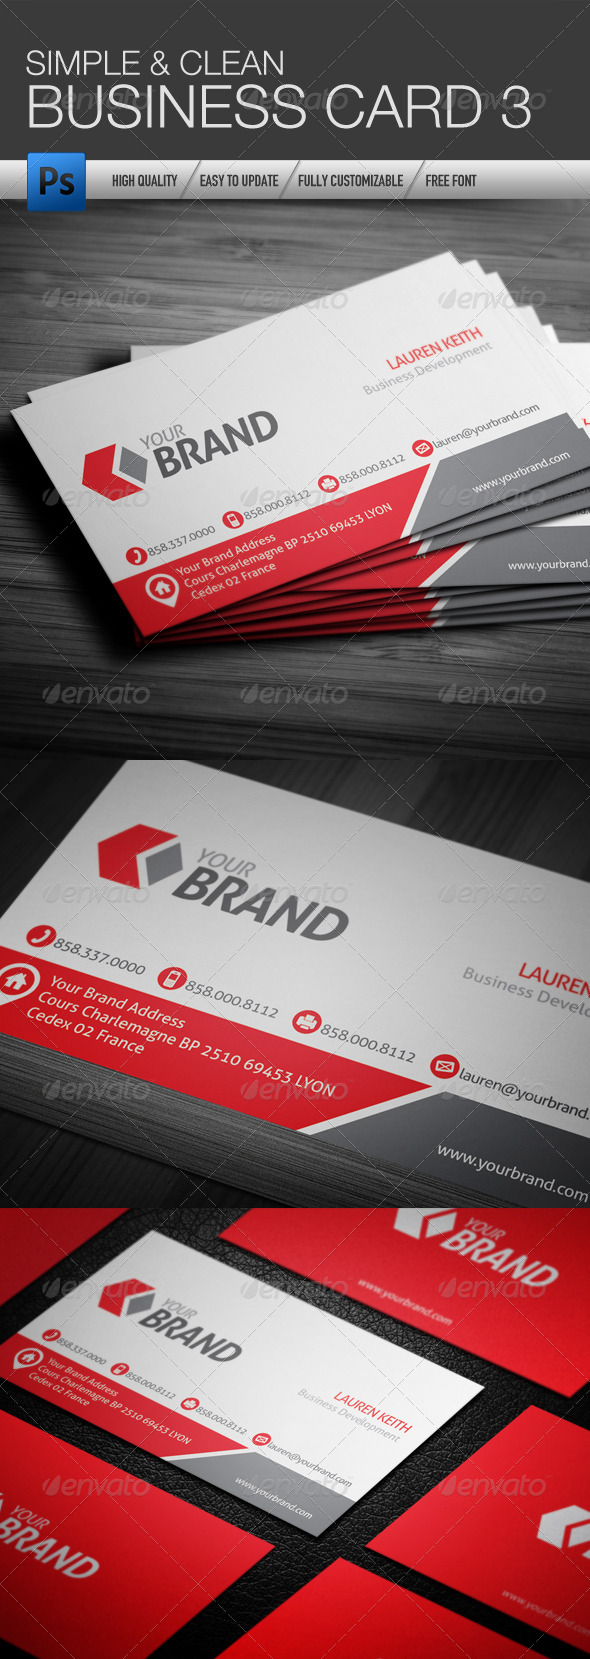 Simple and Clean Business Card 3 - Business Cards Print Templates